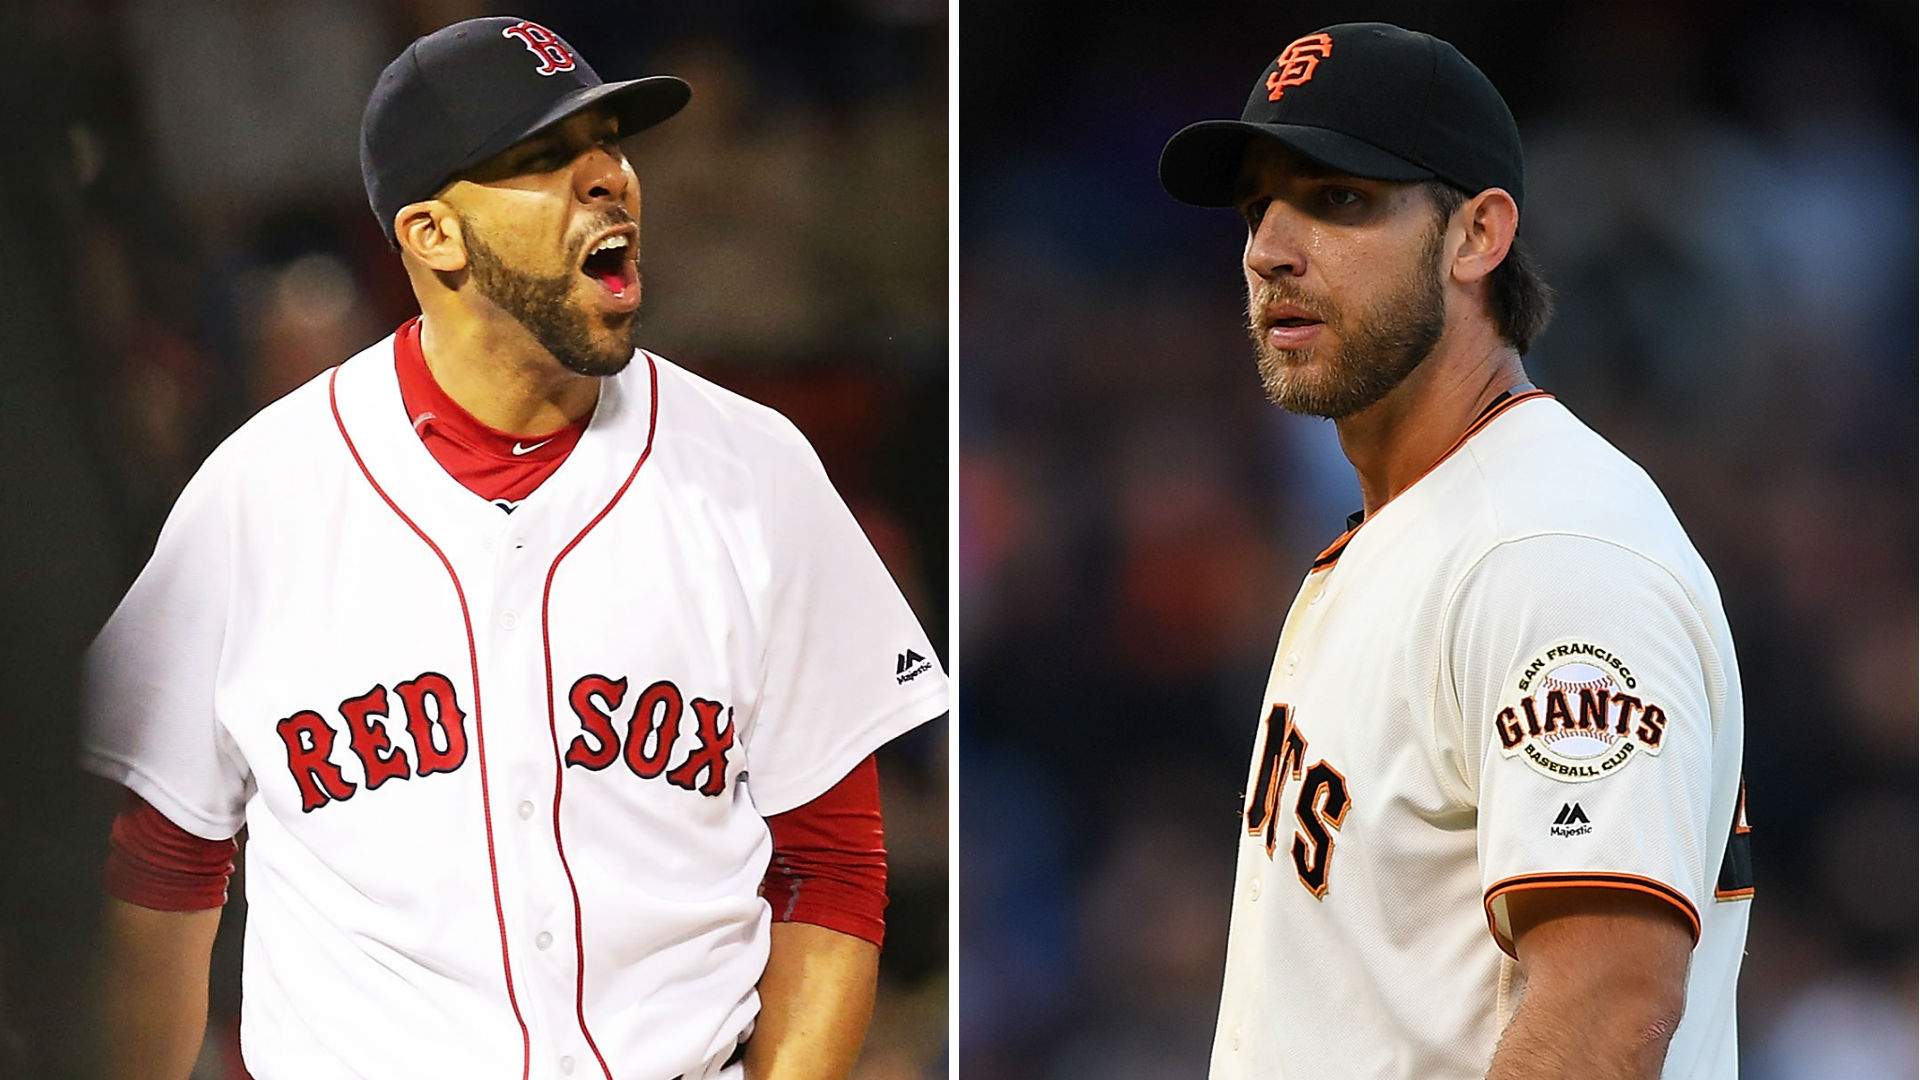 Giants vs. Red Sox in World Series? Idea is not that far-fetched